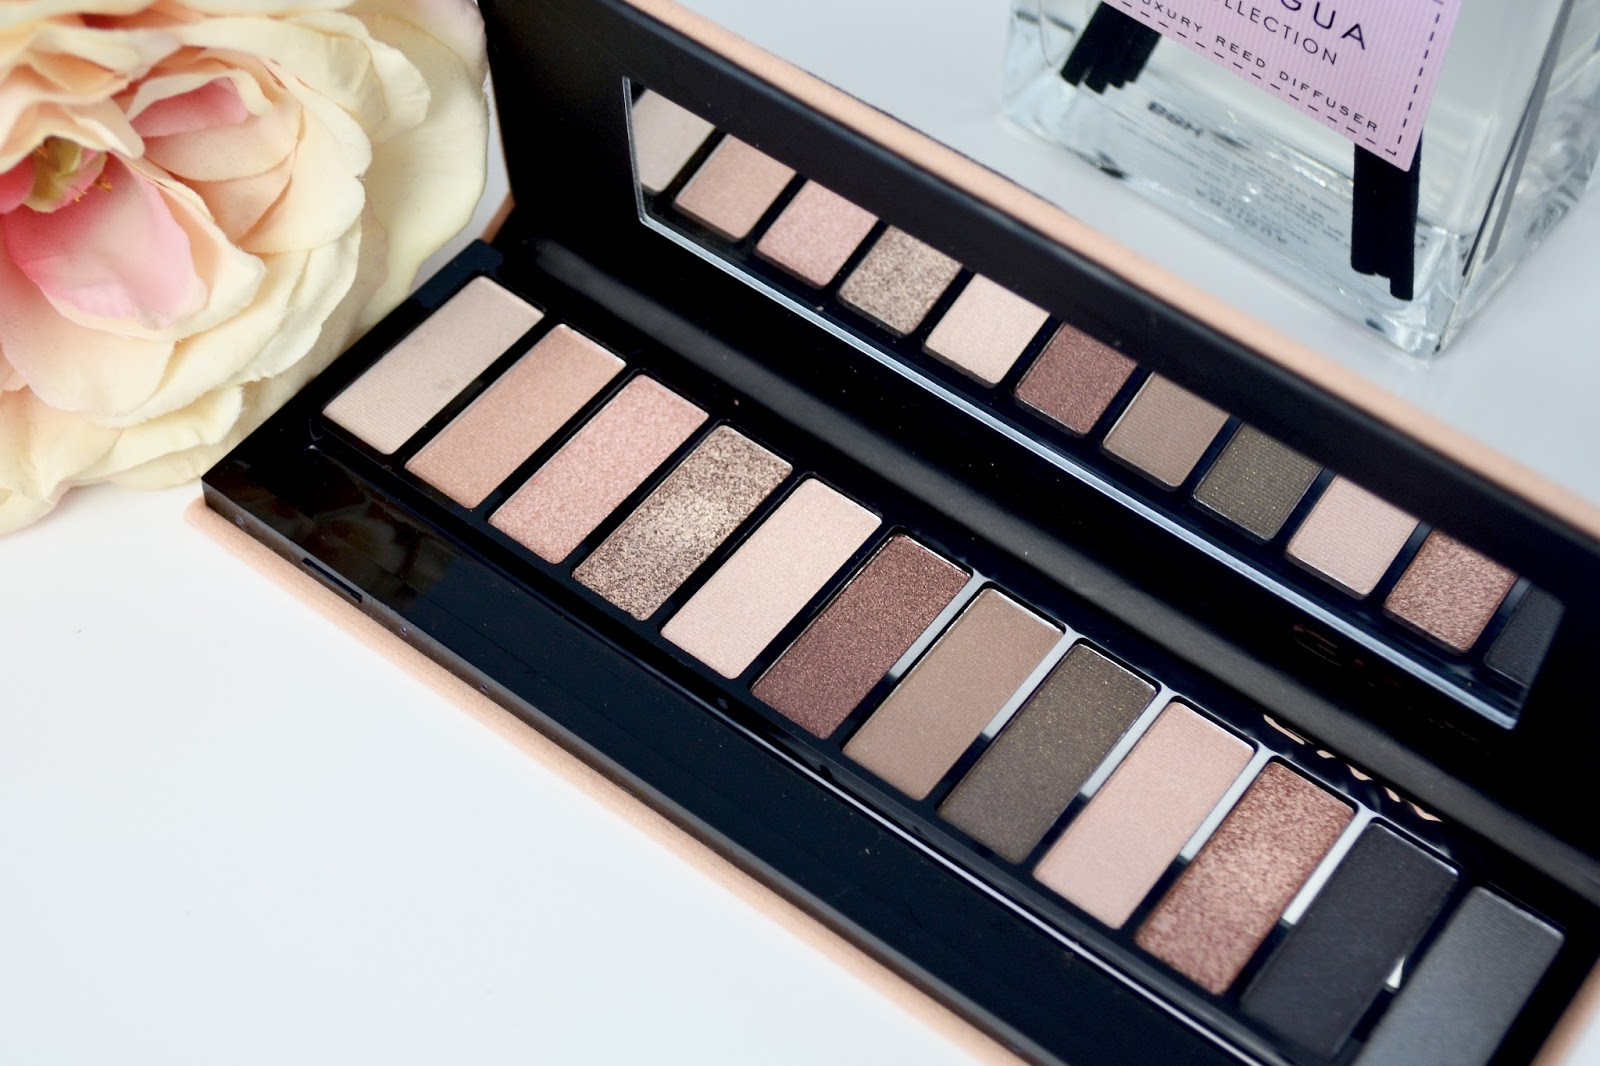 Girls With Attitude,Girls With Attitude Natural Eyeshadow Palette, Urban Decay, Eyeshadow, Shadow, Makeup, Eyeshadows Palette, Palette